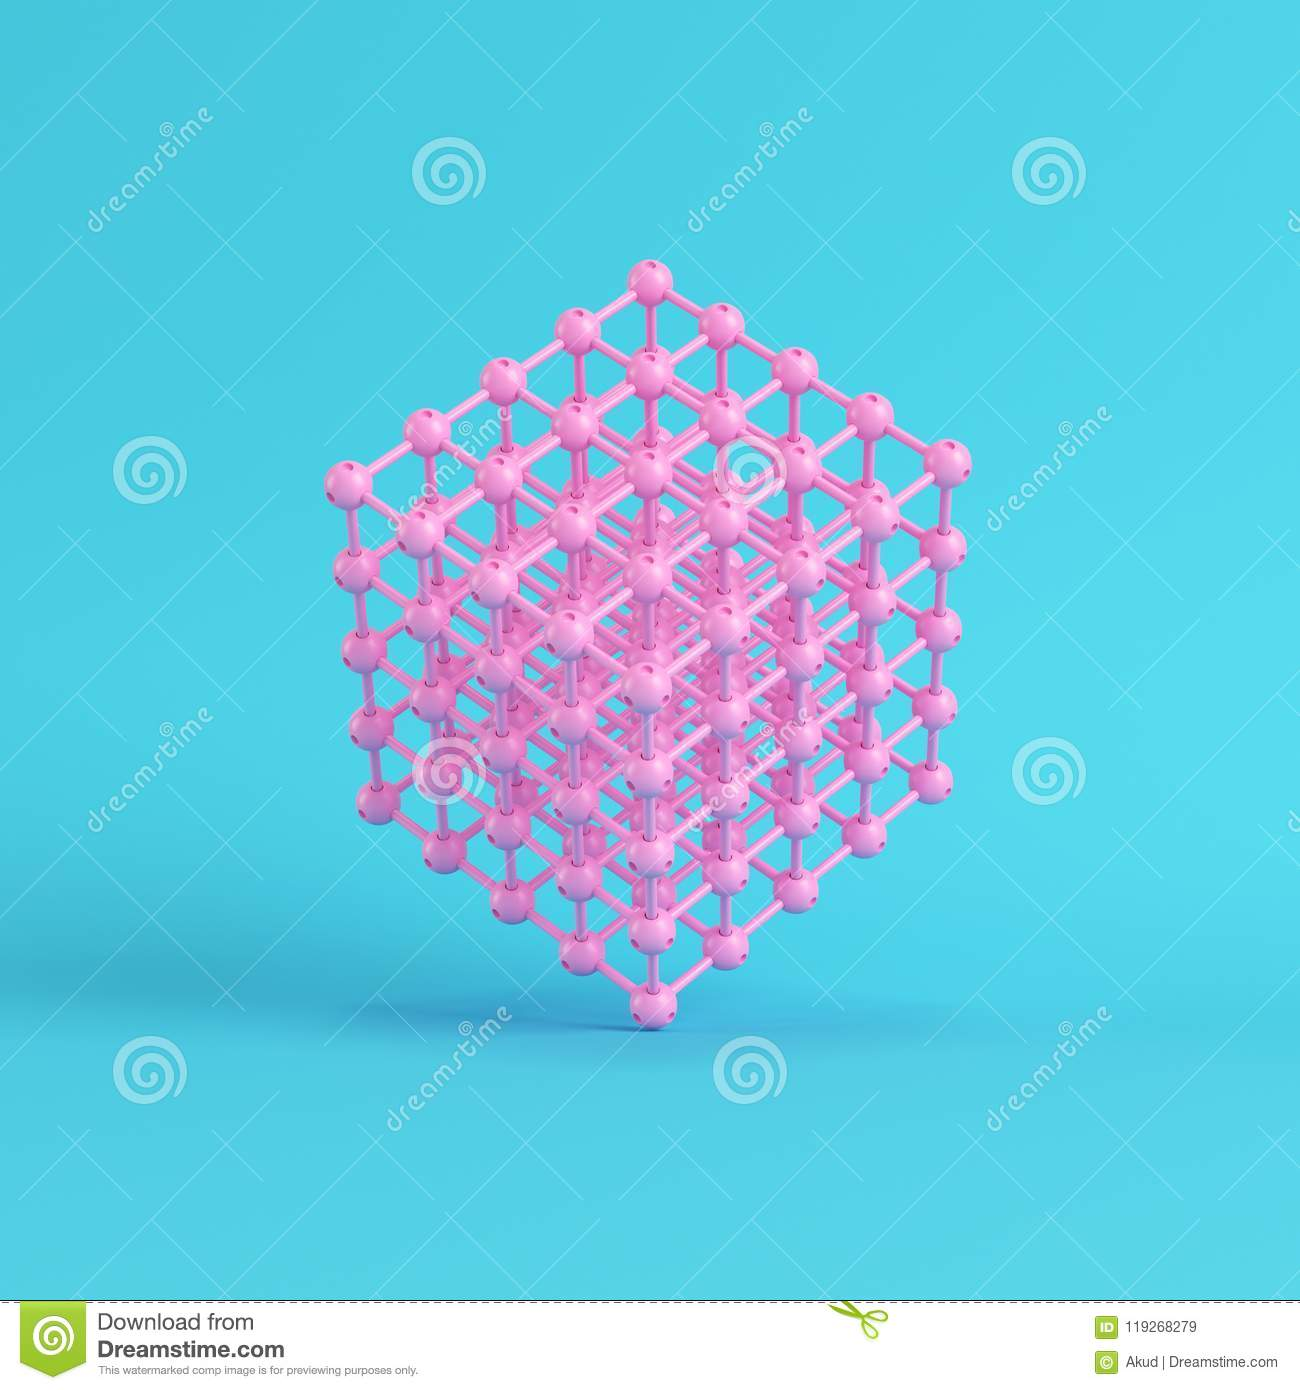 Abstract Pink Spheres In Wire Box On Bright Blue Background In P ...